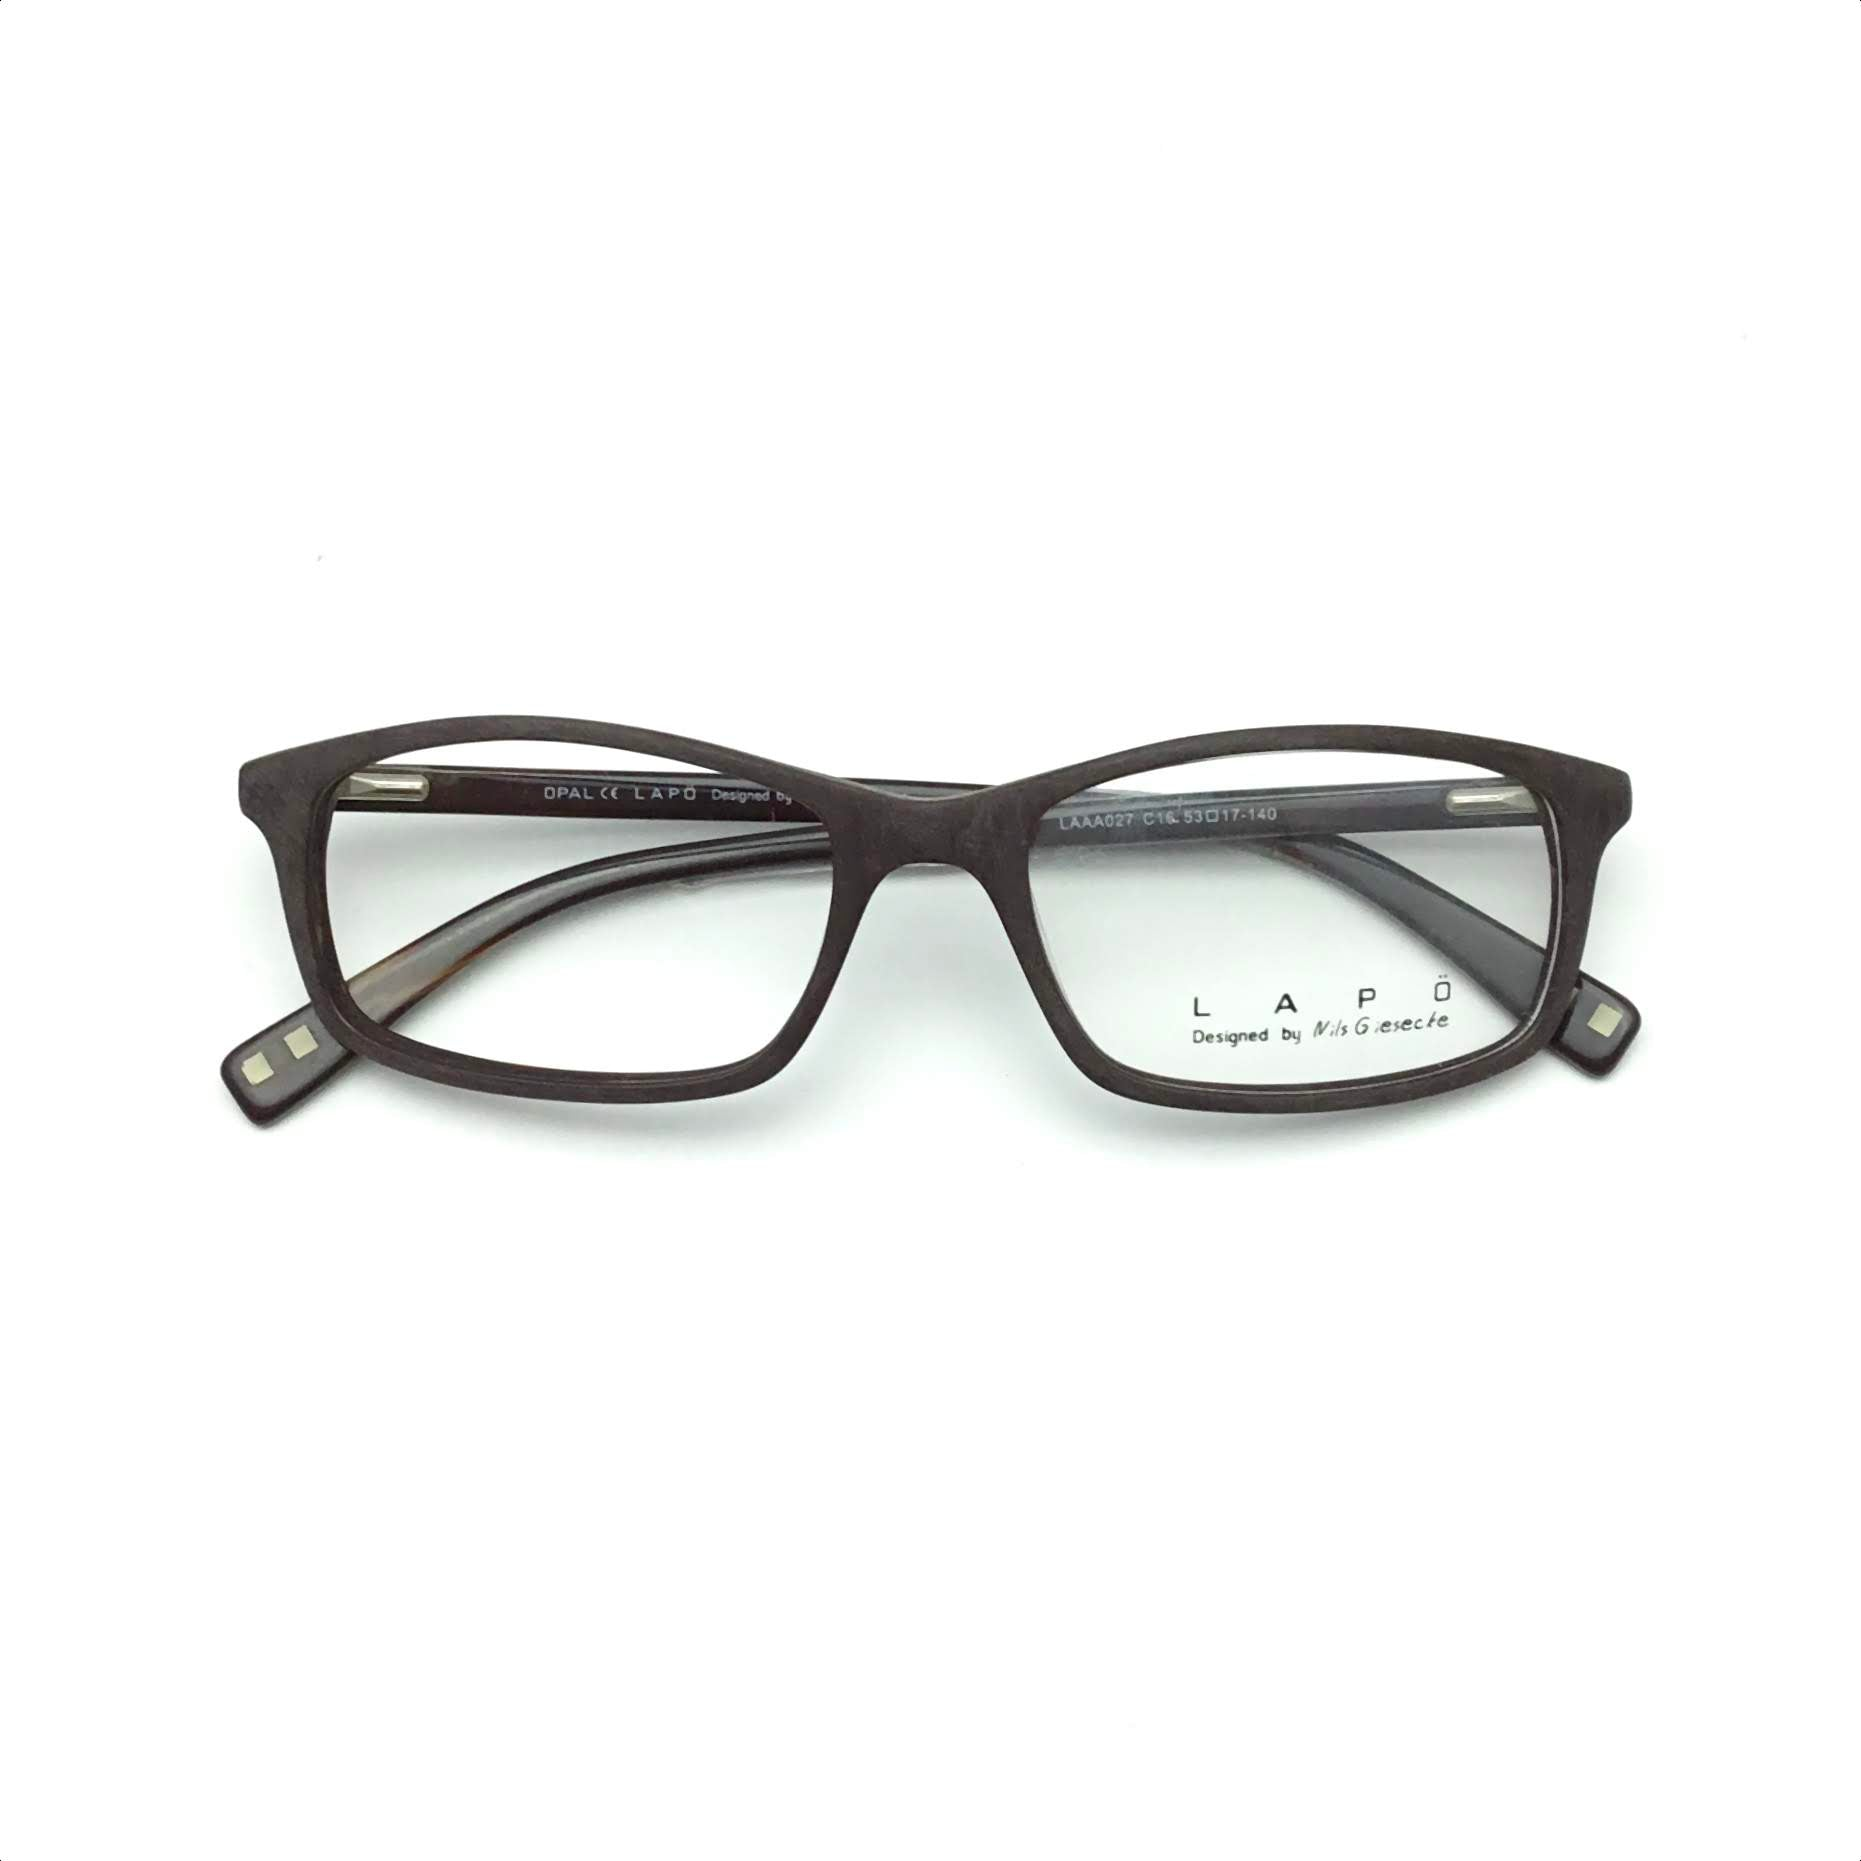 Lapo Glasses $79 SPECIAL C6